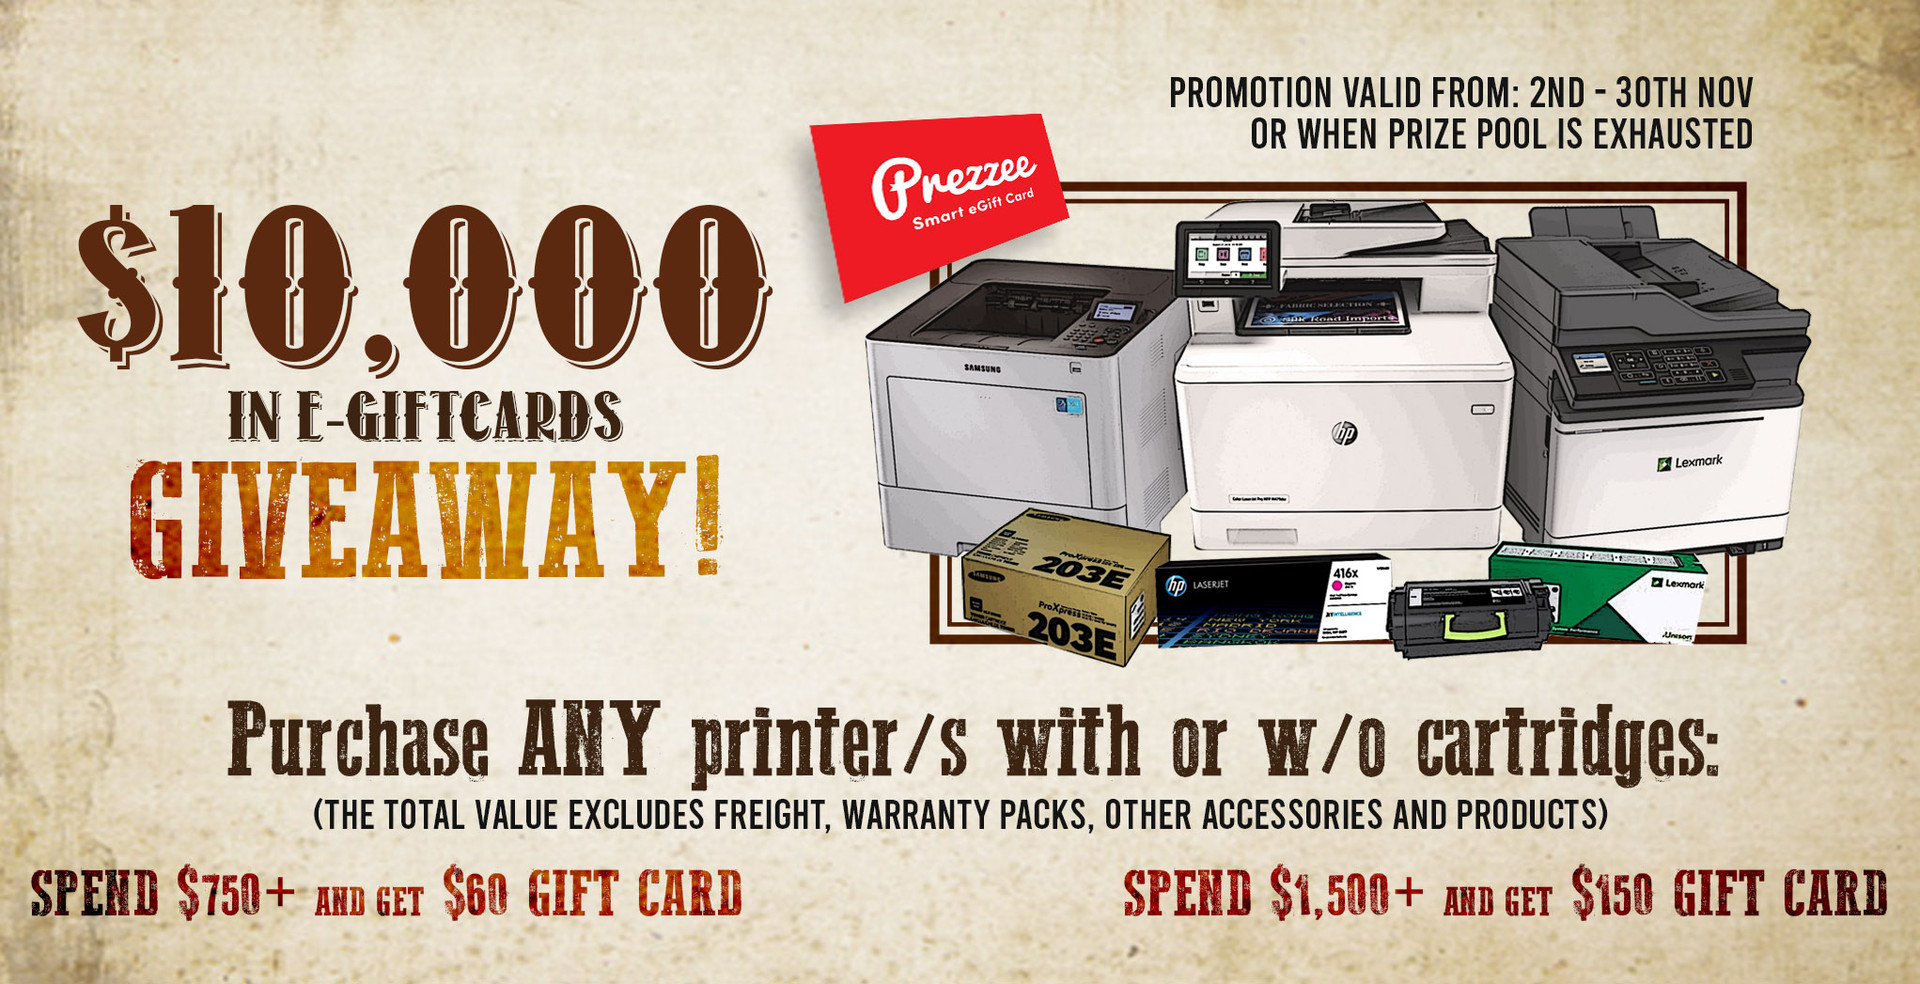 $10,000 in E-Gift Cards Giveaway: Printer & Cartridges